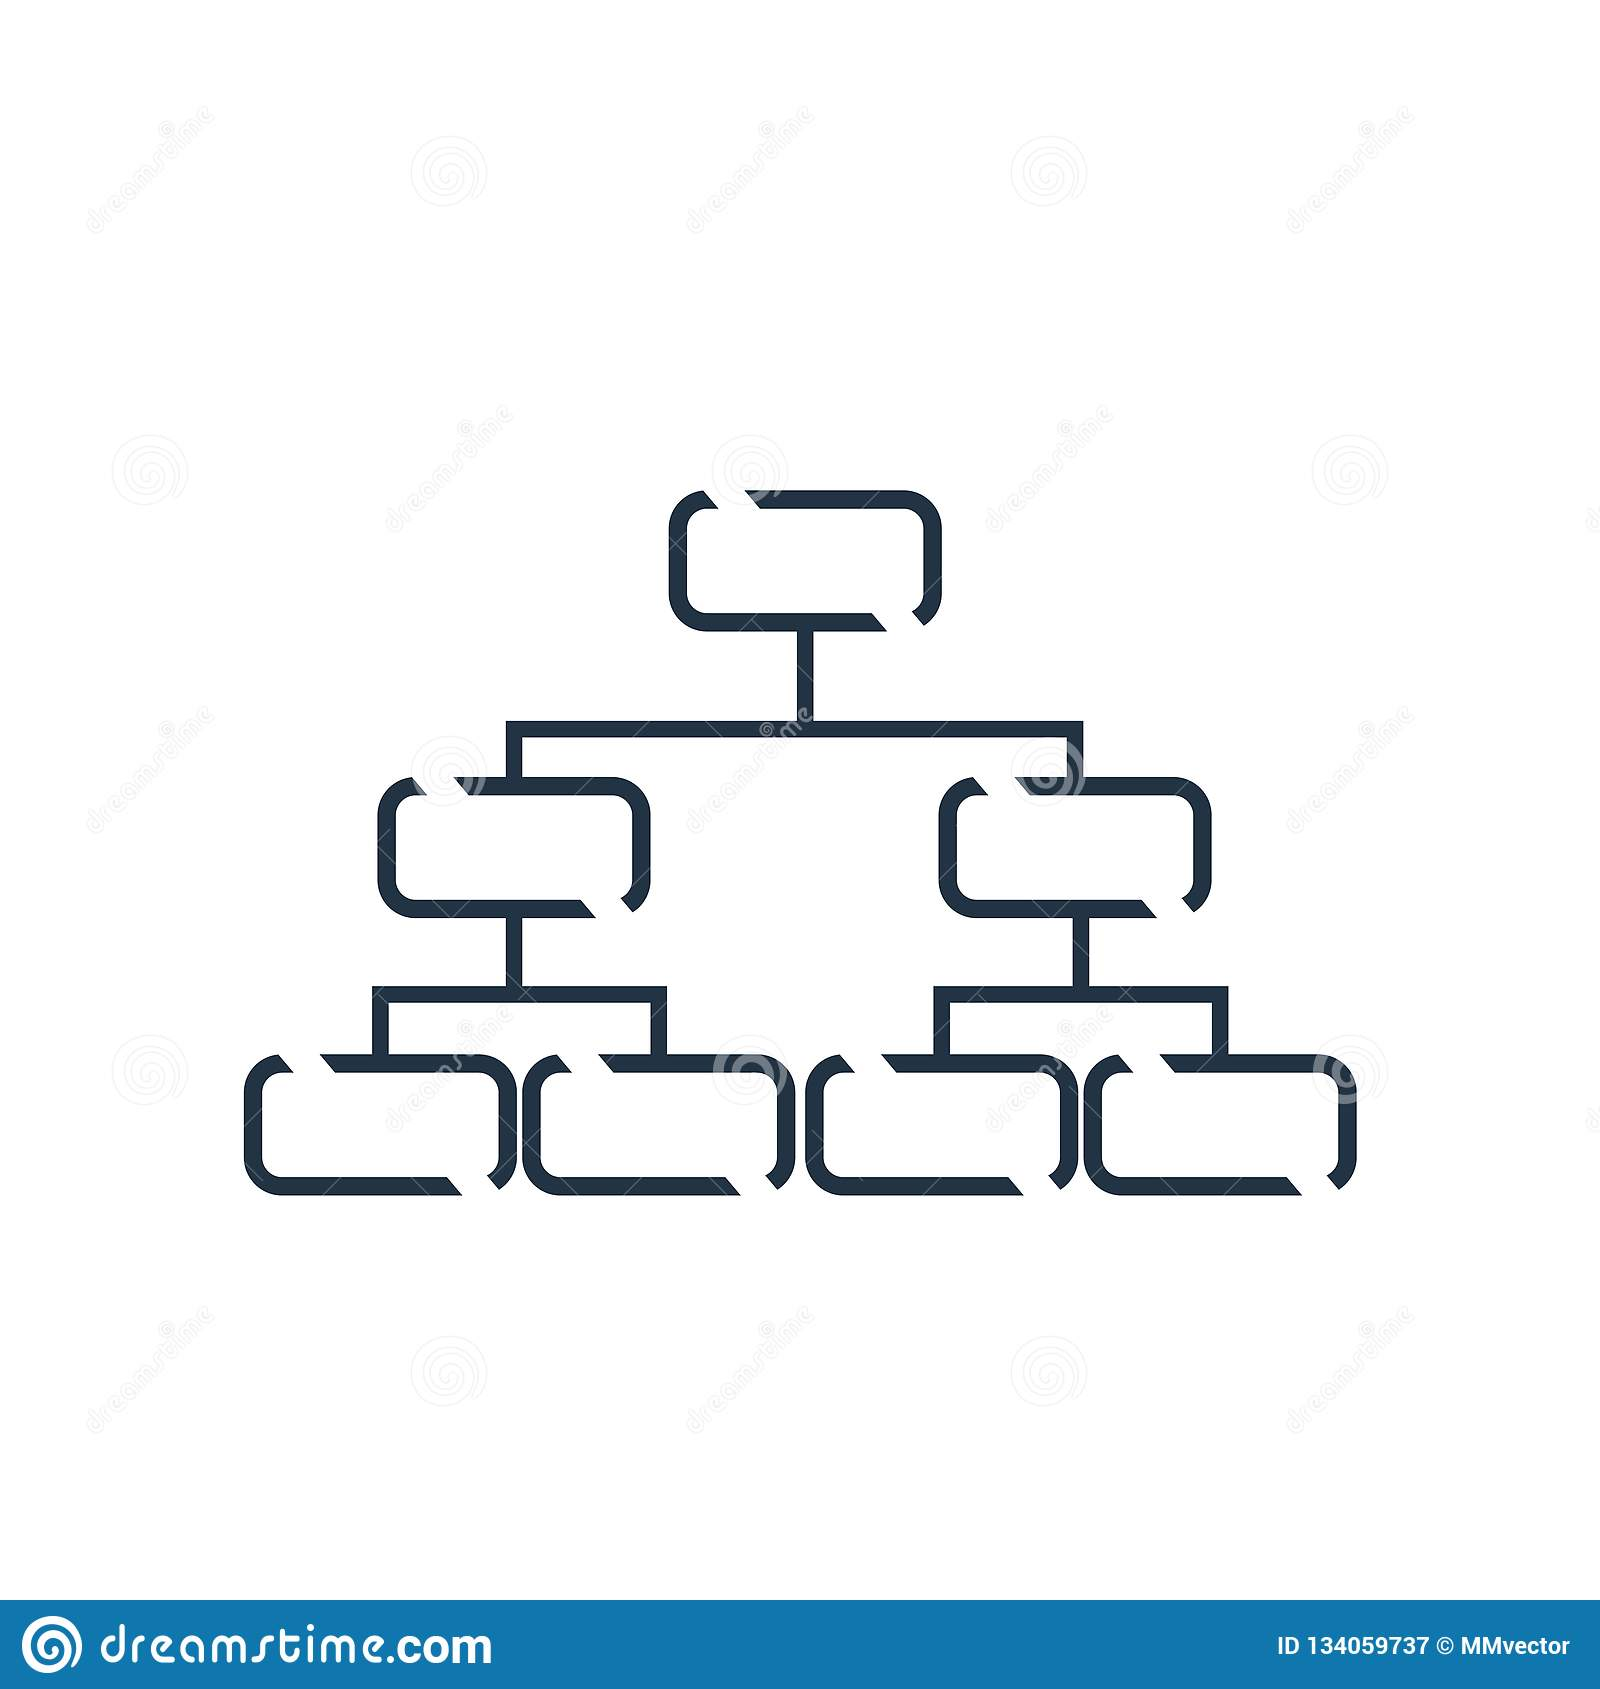 Hierarchical structure icon vector isolated on white background, Hierarchical structure sign